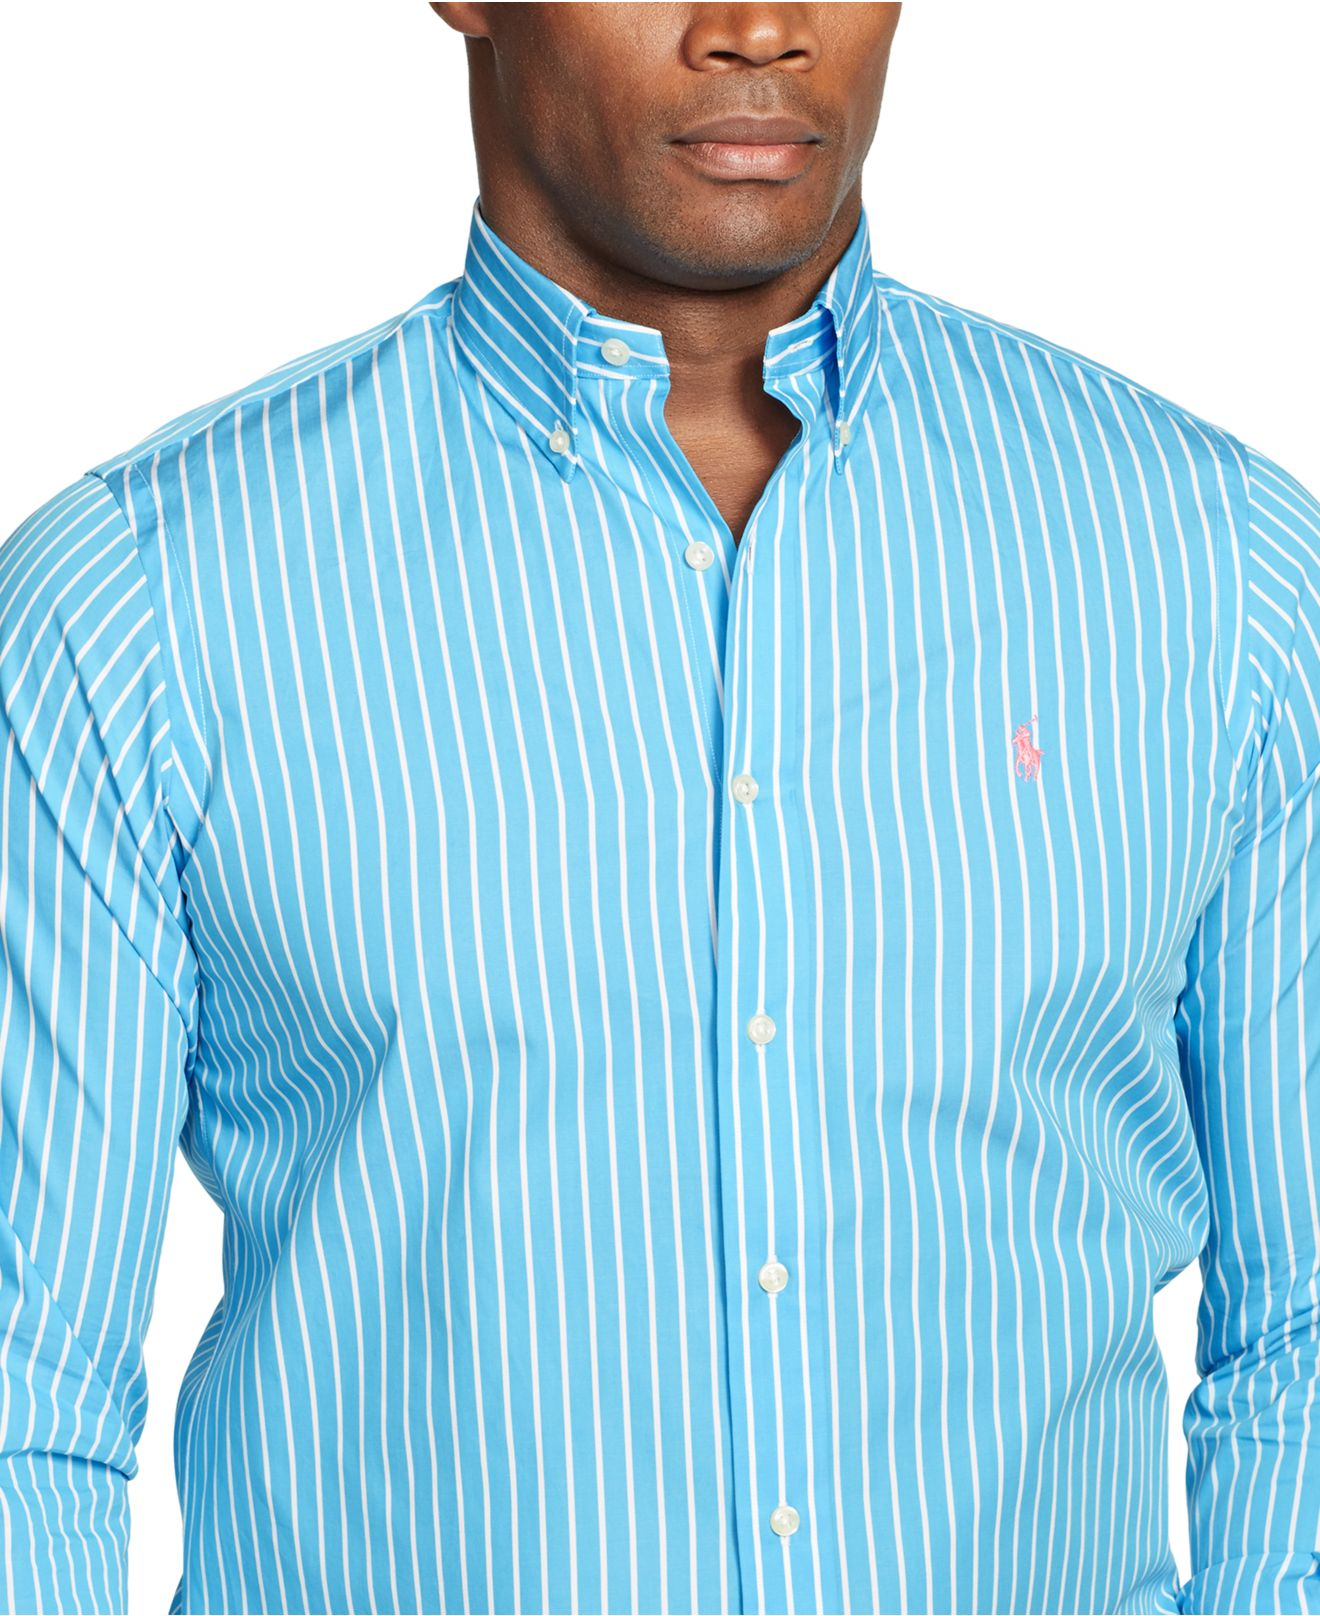 Ralph lauren striped t shirt mens tall mens ralph lauren for Big and tall long sleeve shirts